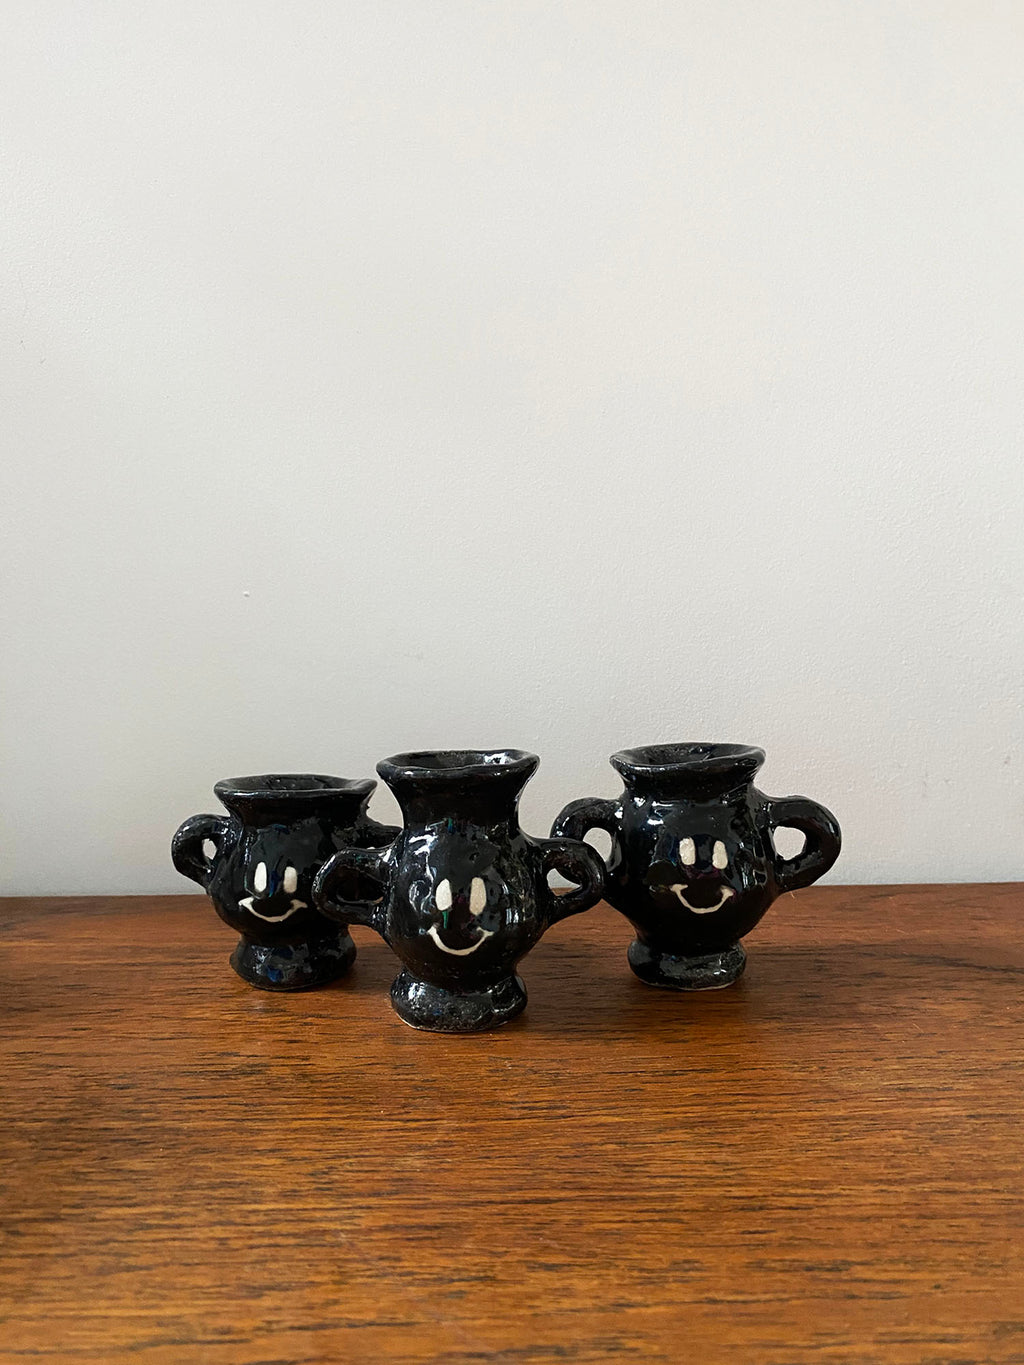 Black Stoneware Buddy vase with Arms